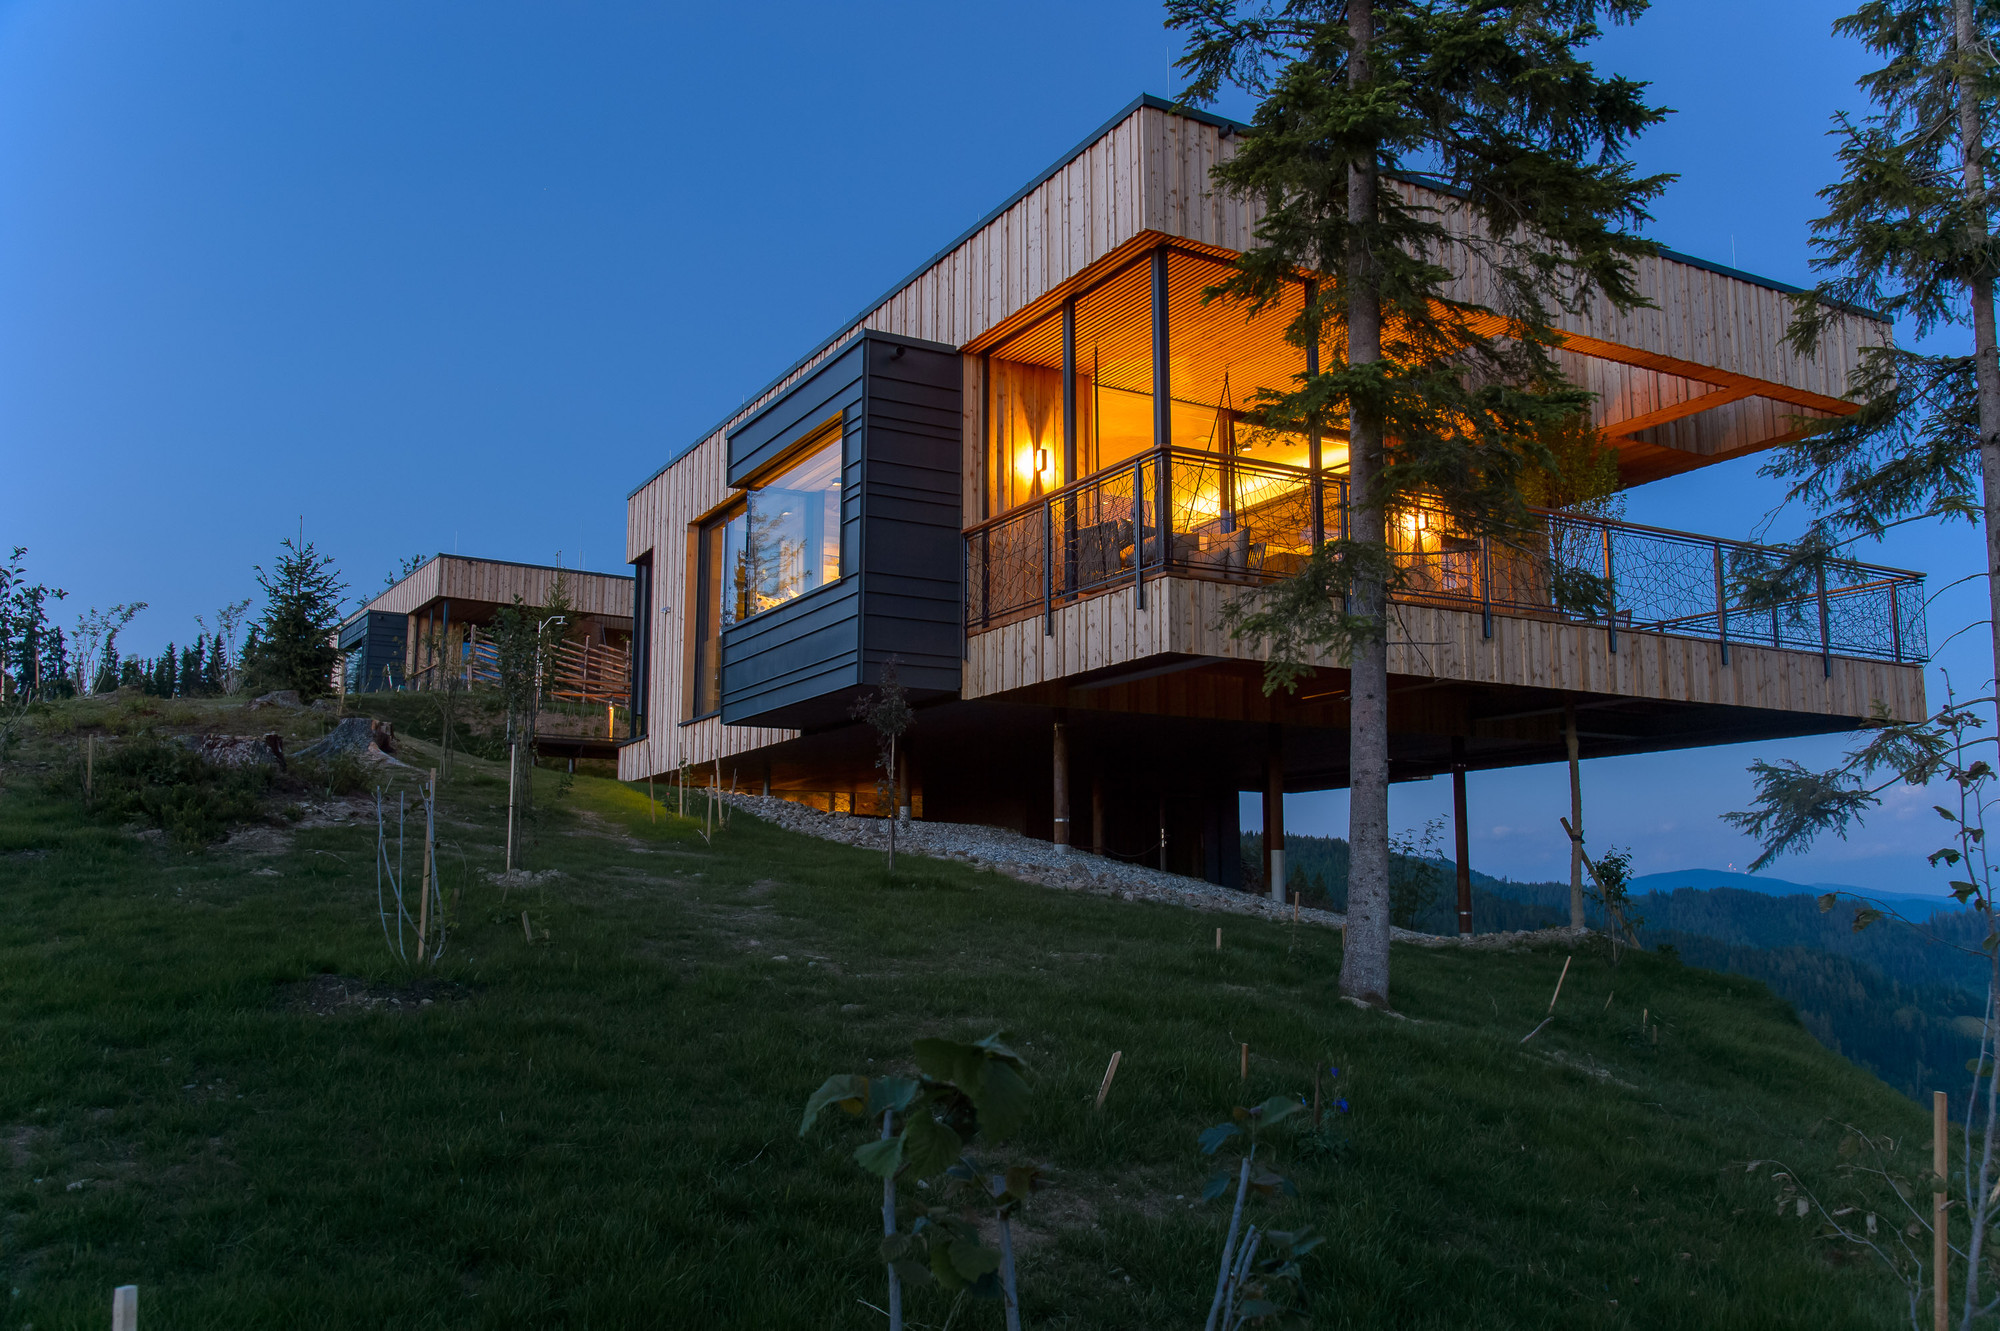 Gallery Of Deluxe Mountain Chalets Viereck Architects 21